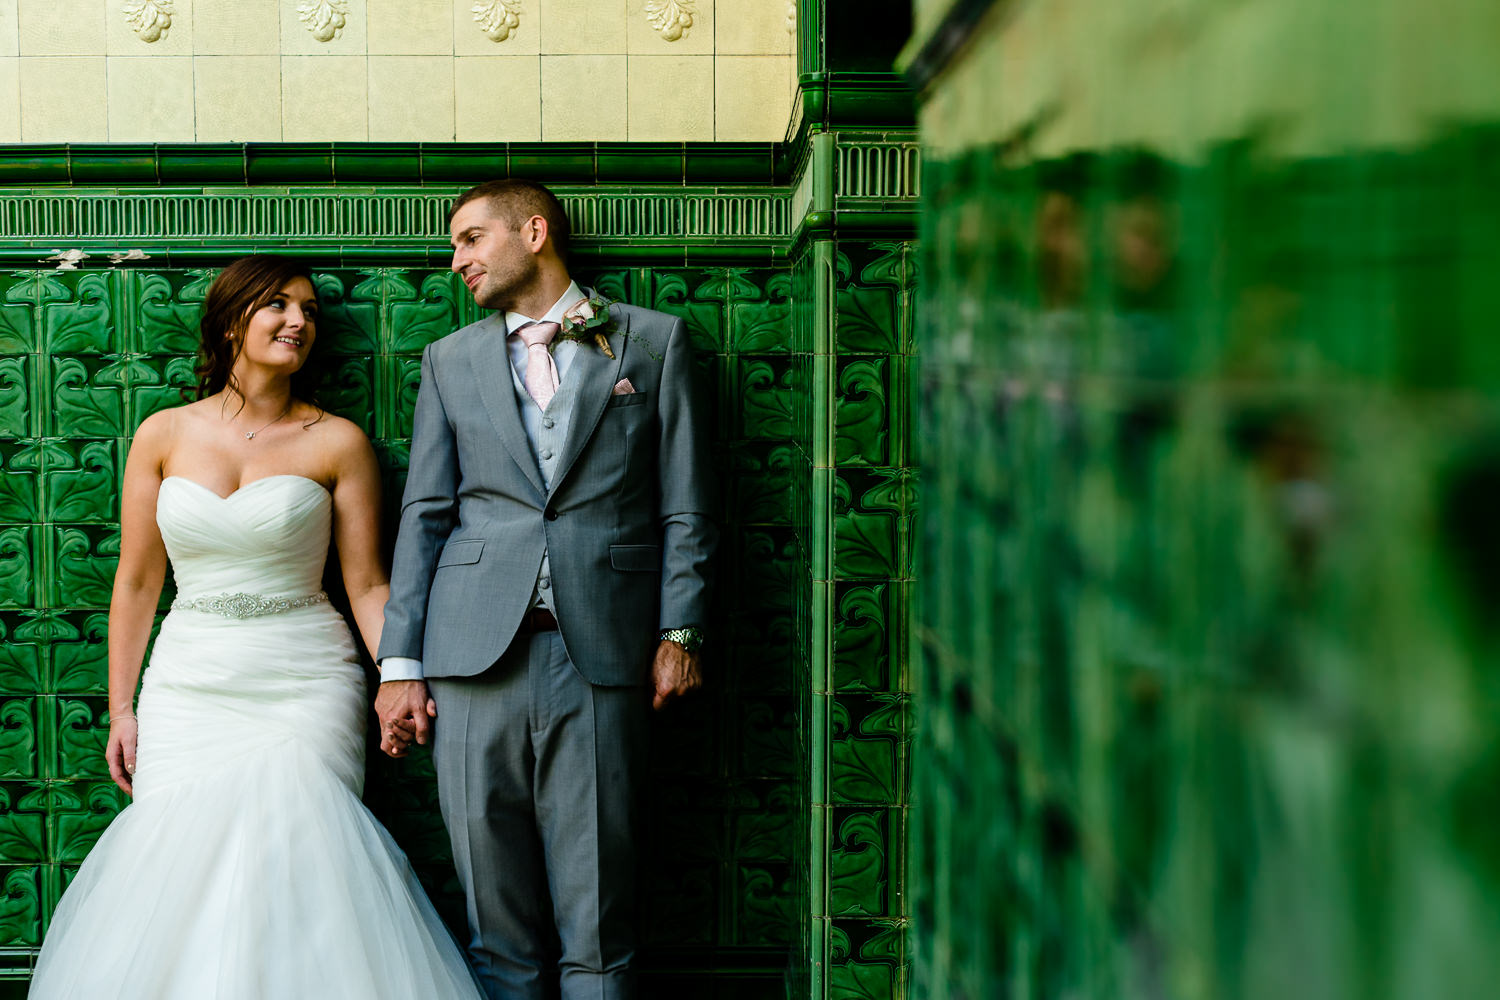 Victoria Baths wedding photography, Kirsty & Kirk with the iconic green tiles.